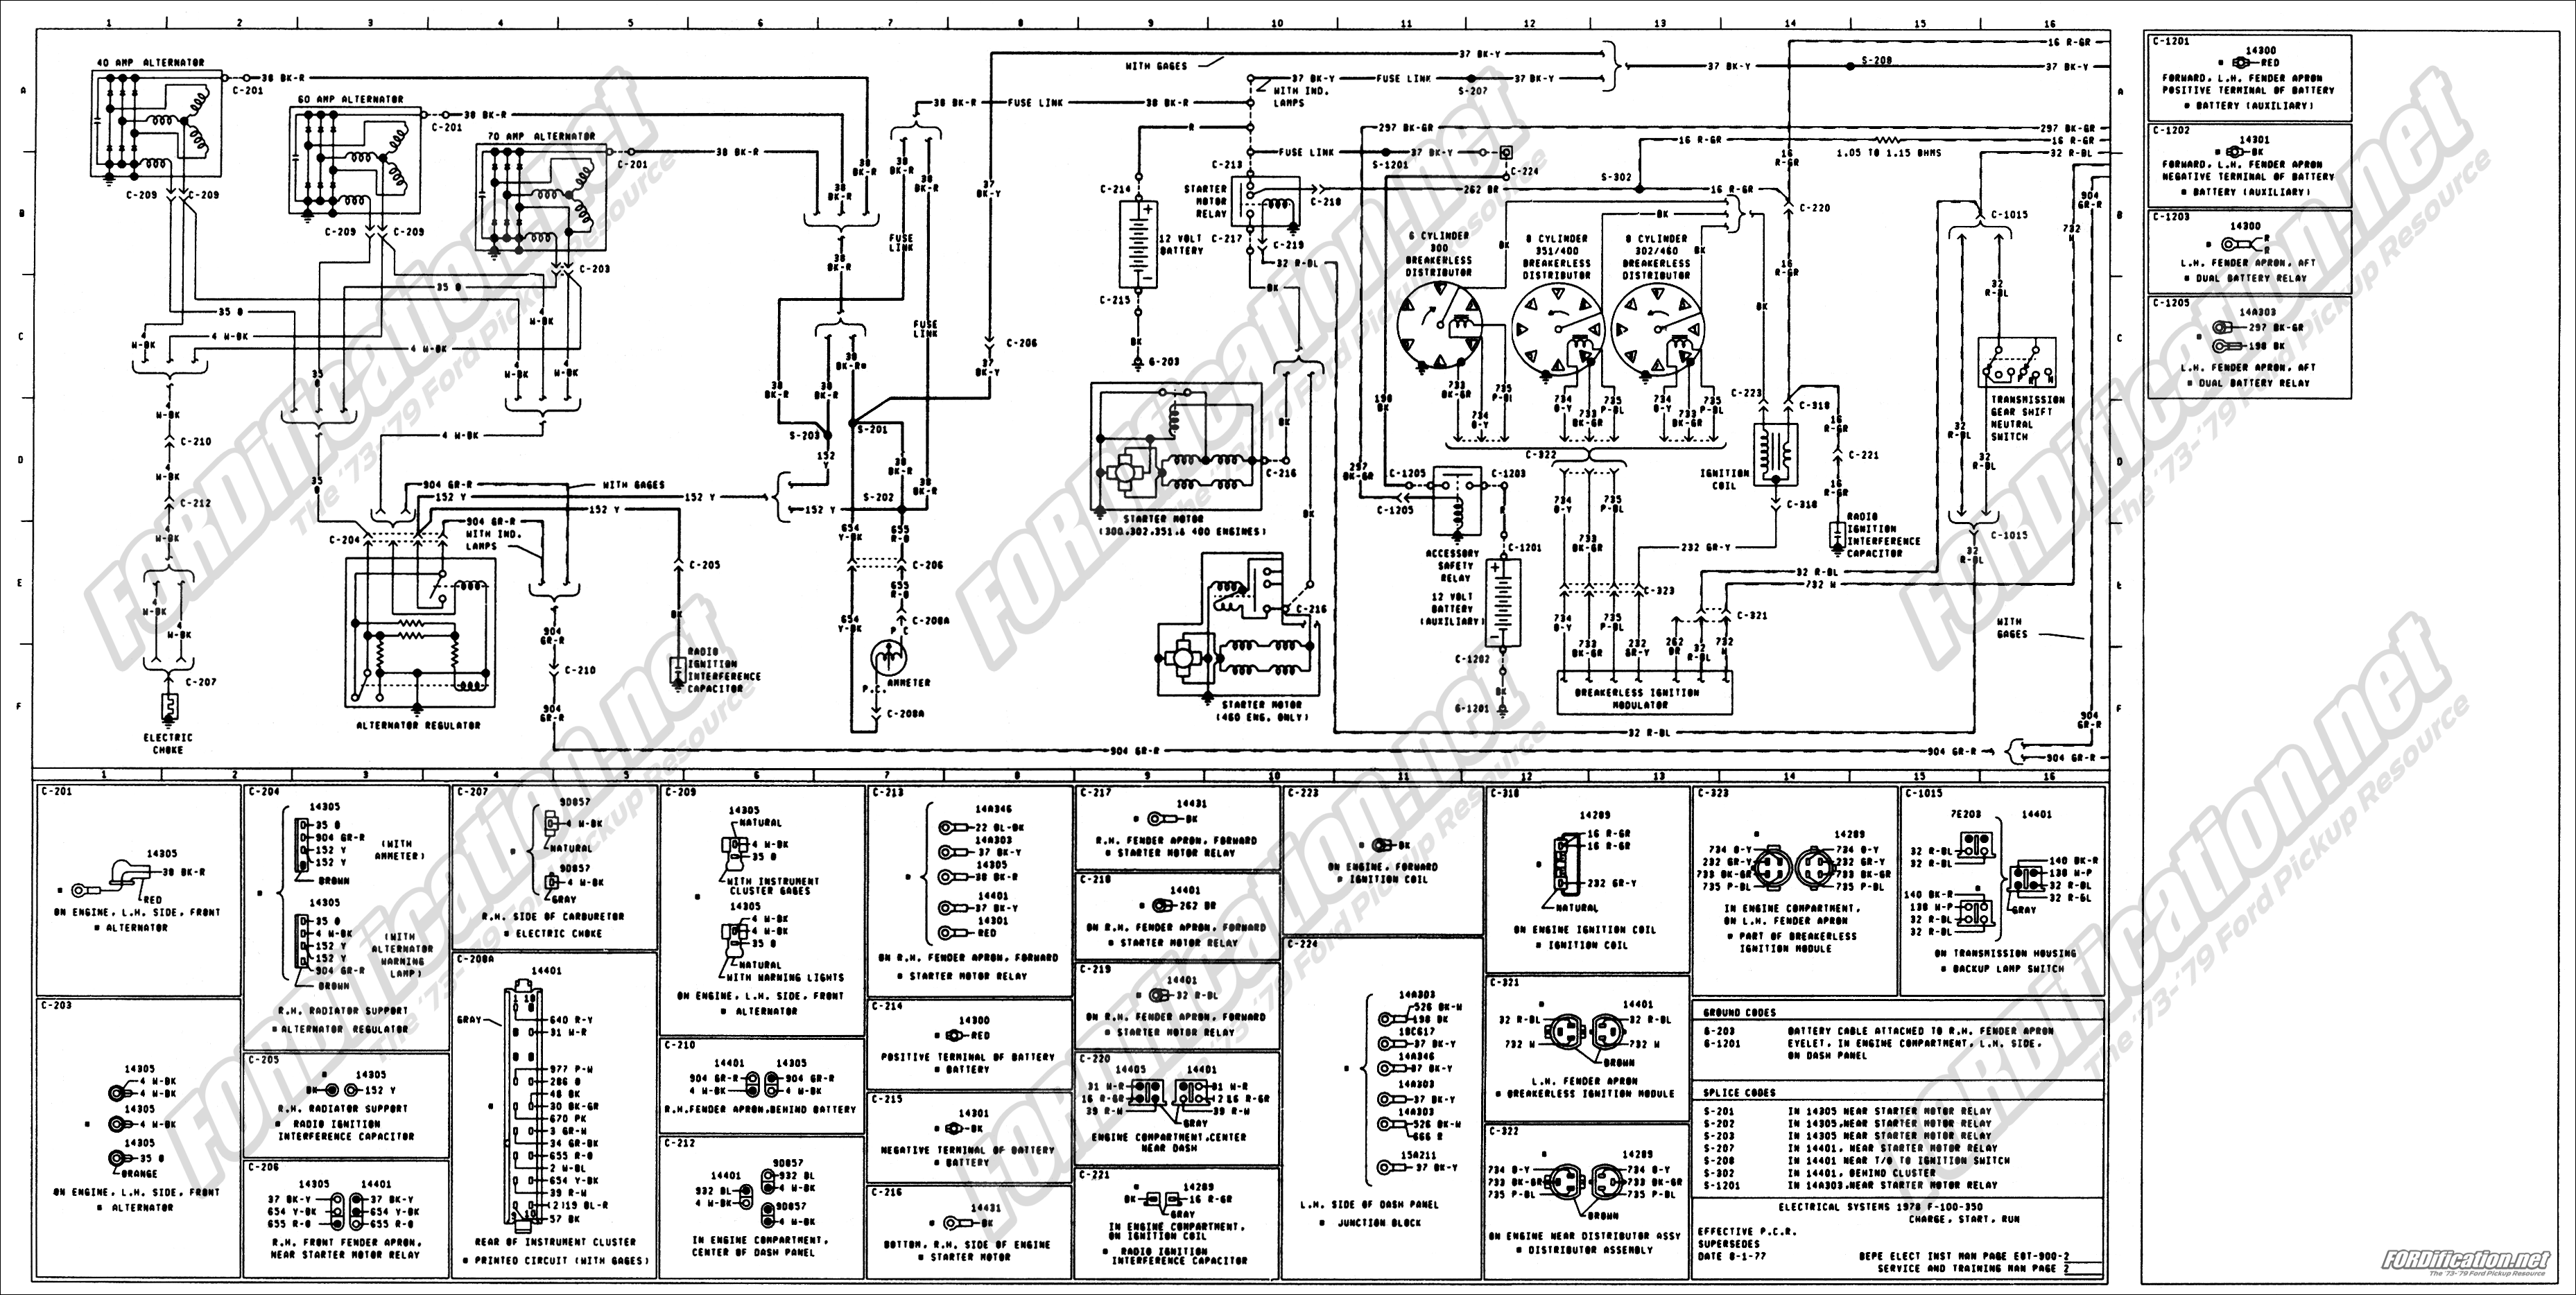 Wiring Diagram For 1969 Ford F100, Wiring, Get Free Image